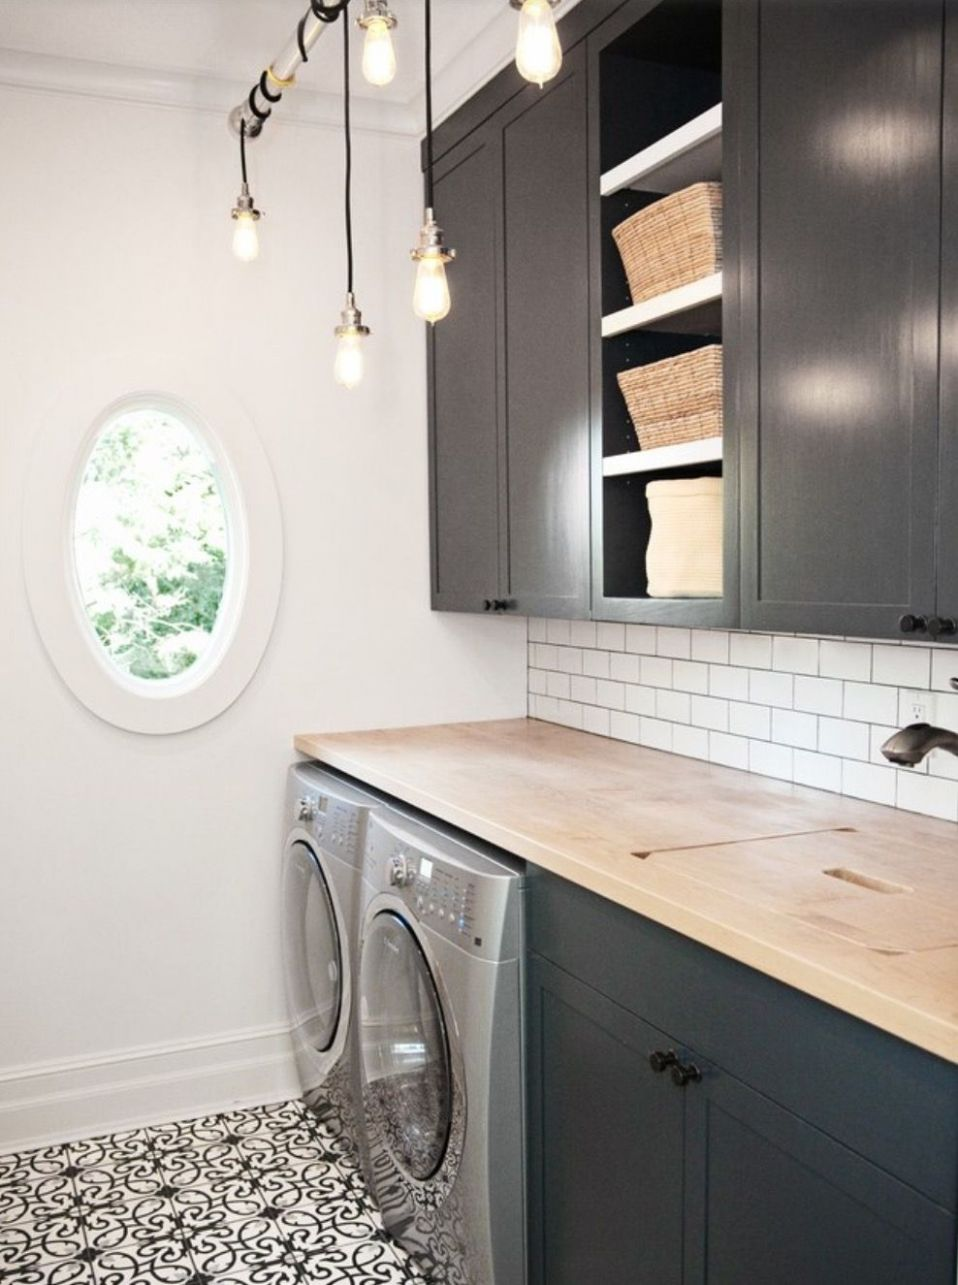 laundry room: dark cabinets, counter w/sink cover | Modern laundry ..